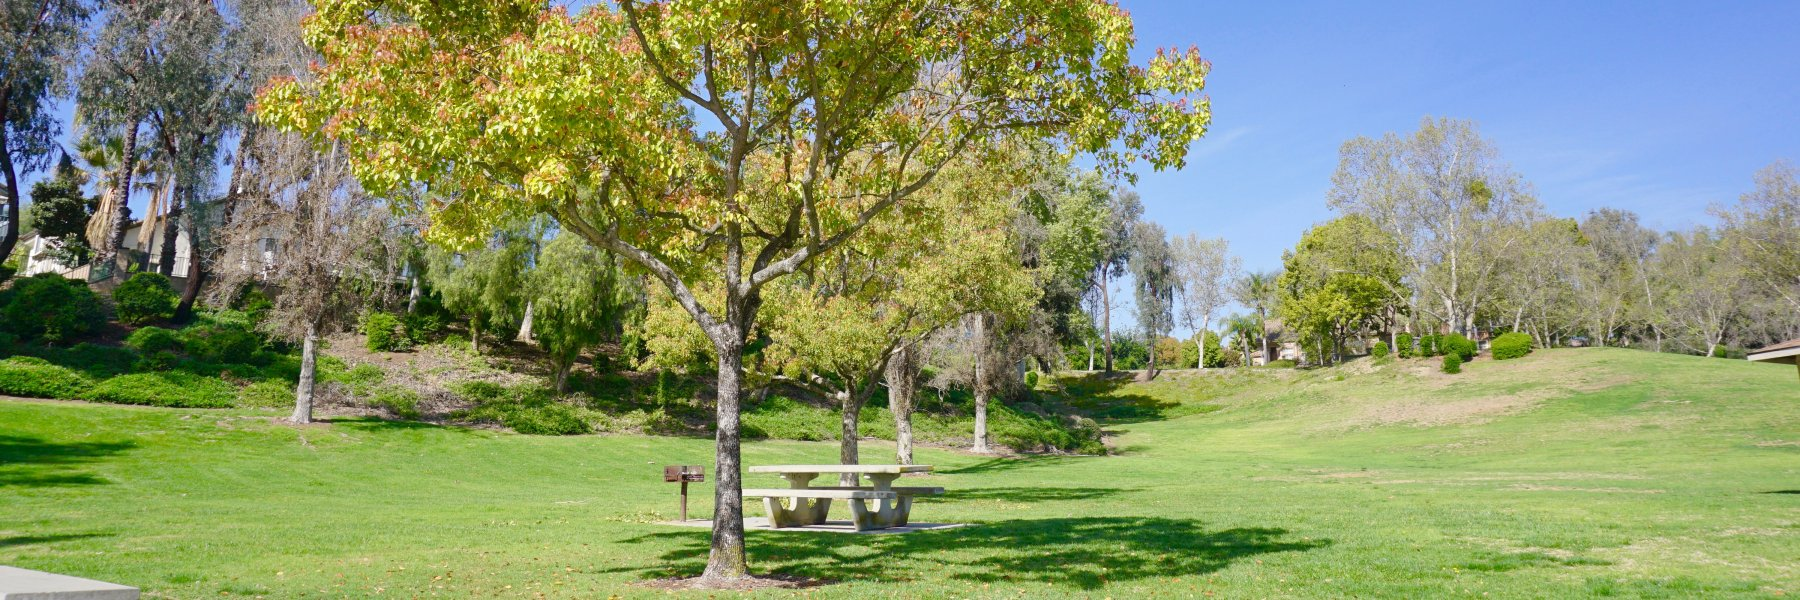 Coral Ridge is a community of homes in Chino Hills California